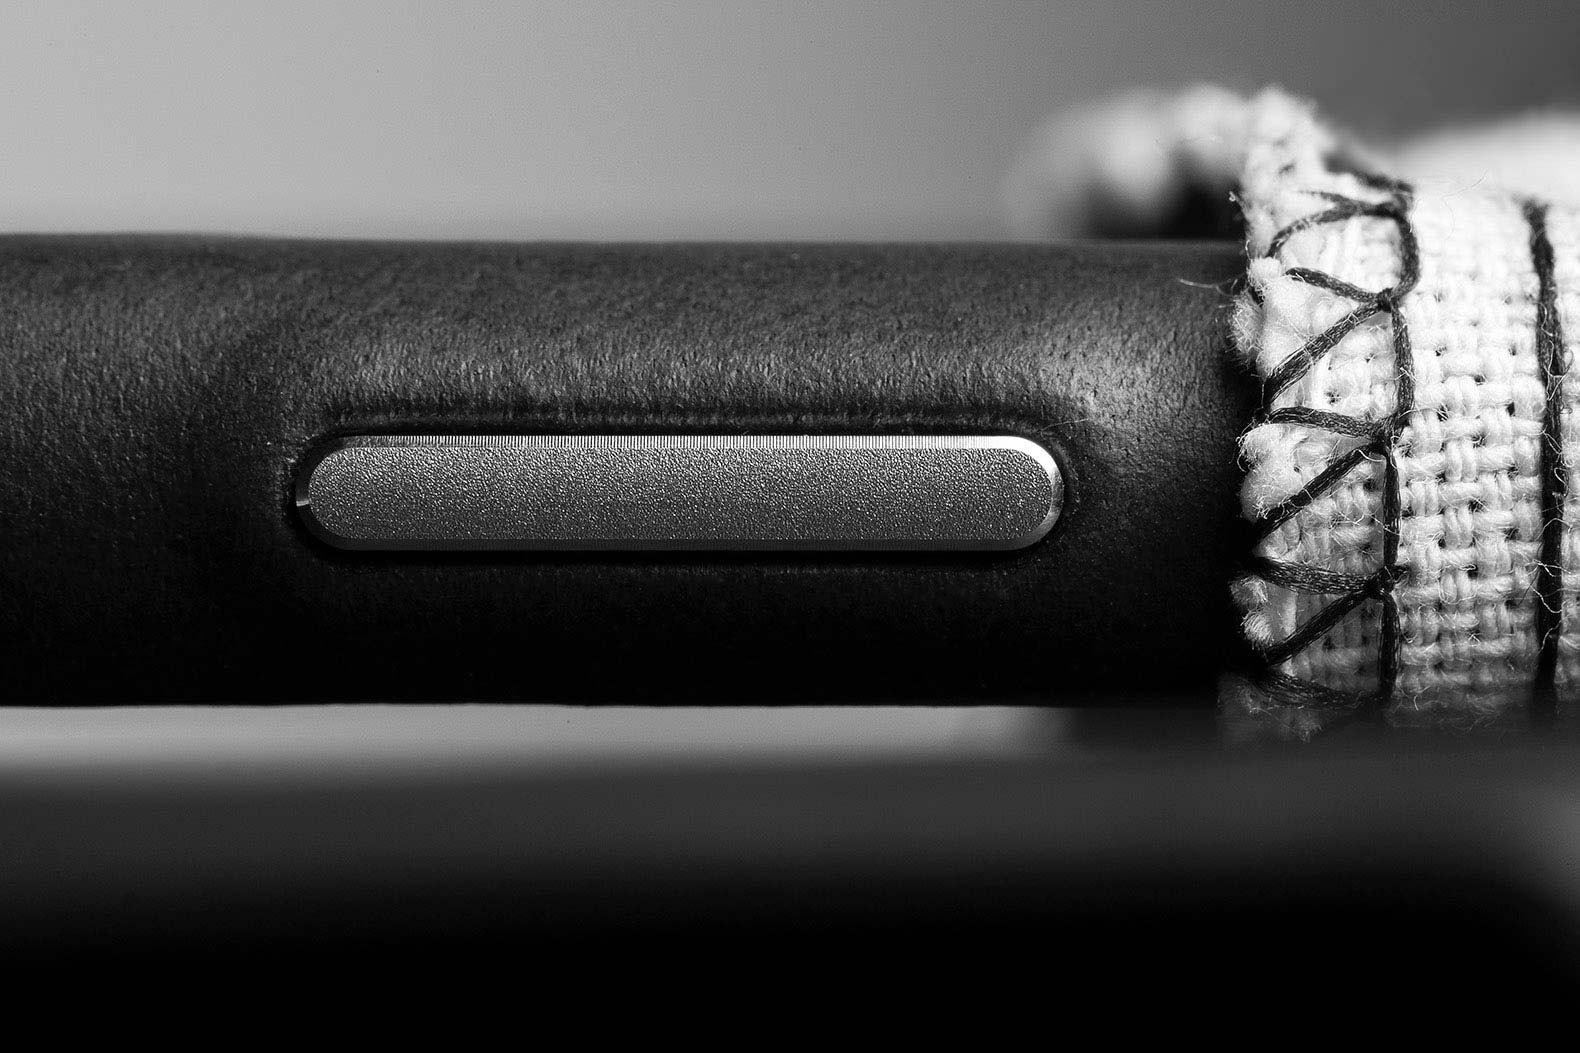 iphone-leather-case-button-detail-black-and-white